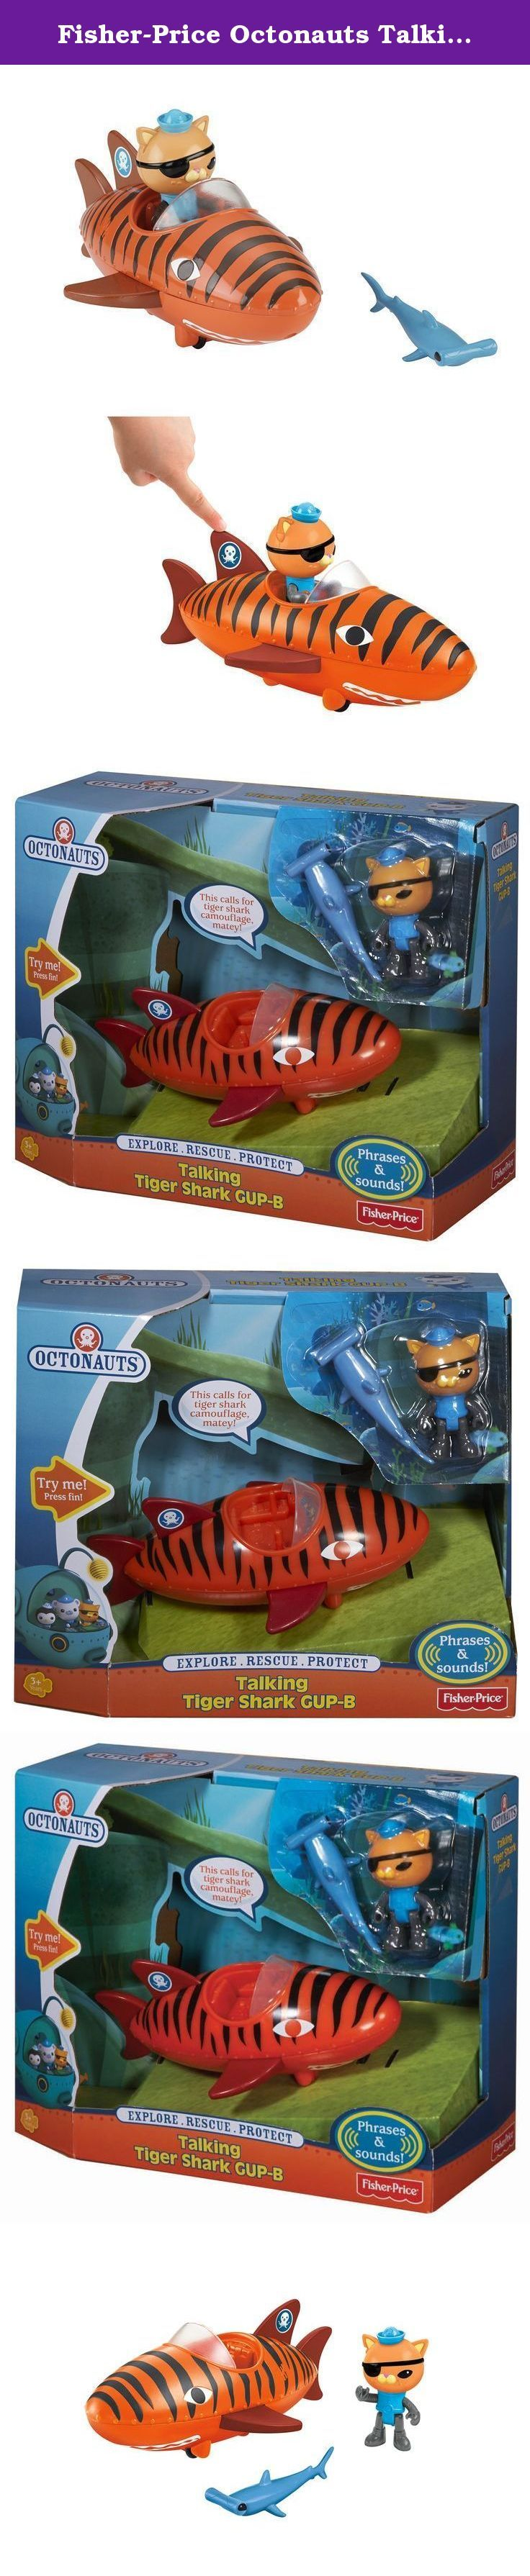 """Fisher-Price Octonauts Talking Tiger Shark Gup-B. With its sleek tiger shark design and turbo speed, the Gap-B is Kwazii' s ideal racing vehicle! Press down on the Gup's fin to activate action sounds and phrases from Kwazii and Barnacles! Includes Kwazii and a creature to rescue! Requires 3 """"AG13"""" (LR44) Button Cell batteries. Not intended for water play."""